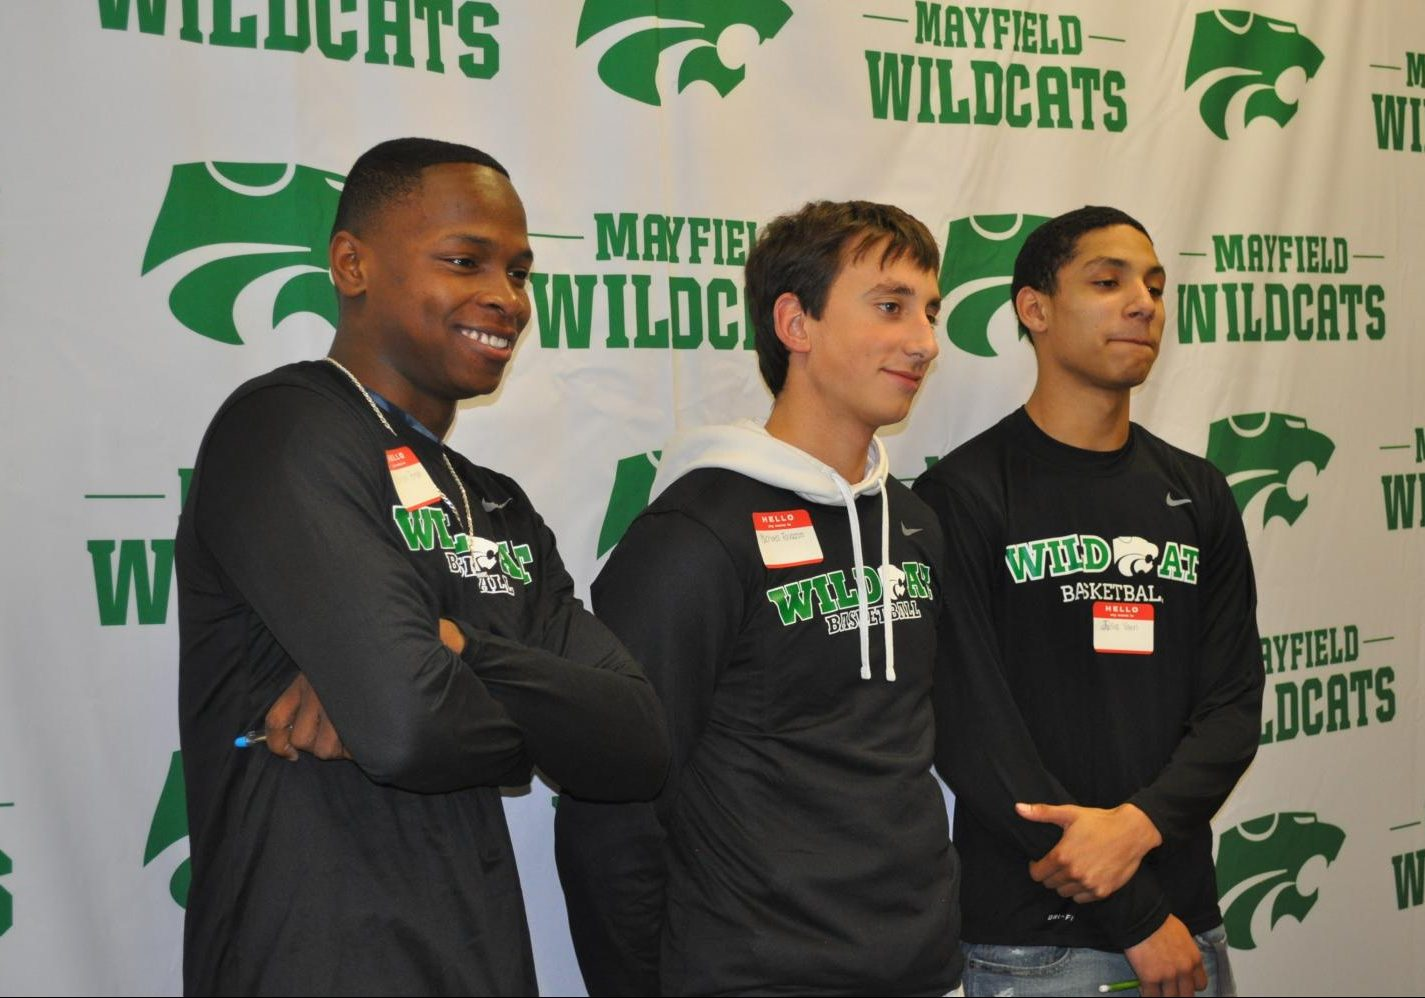 Senior Neshawn Brown, junior Michael Favazzo, and senior Julius Vann lead the basketball team this year.  The three boys attended Media Day on Friday, Nov. 9.